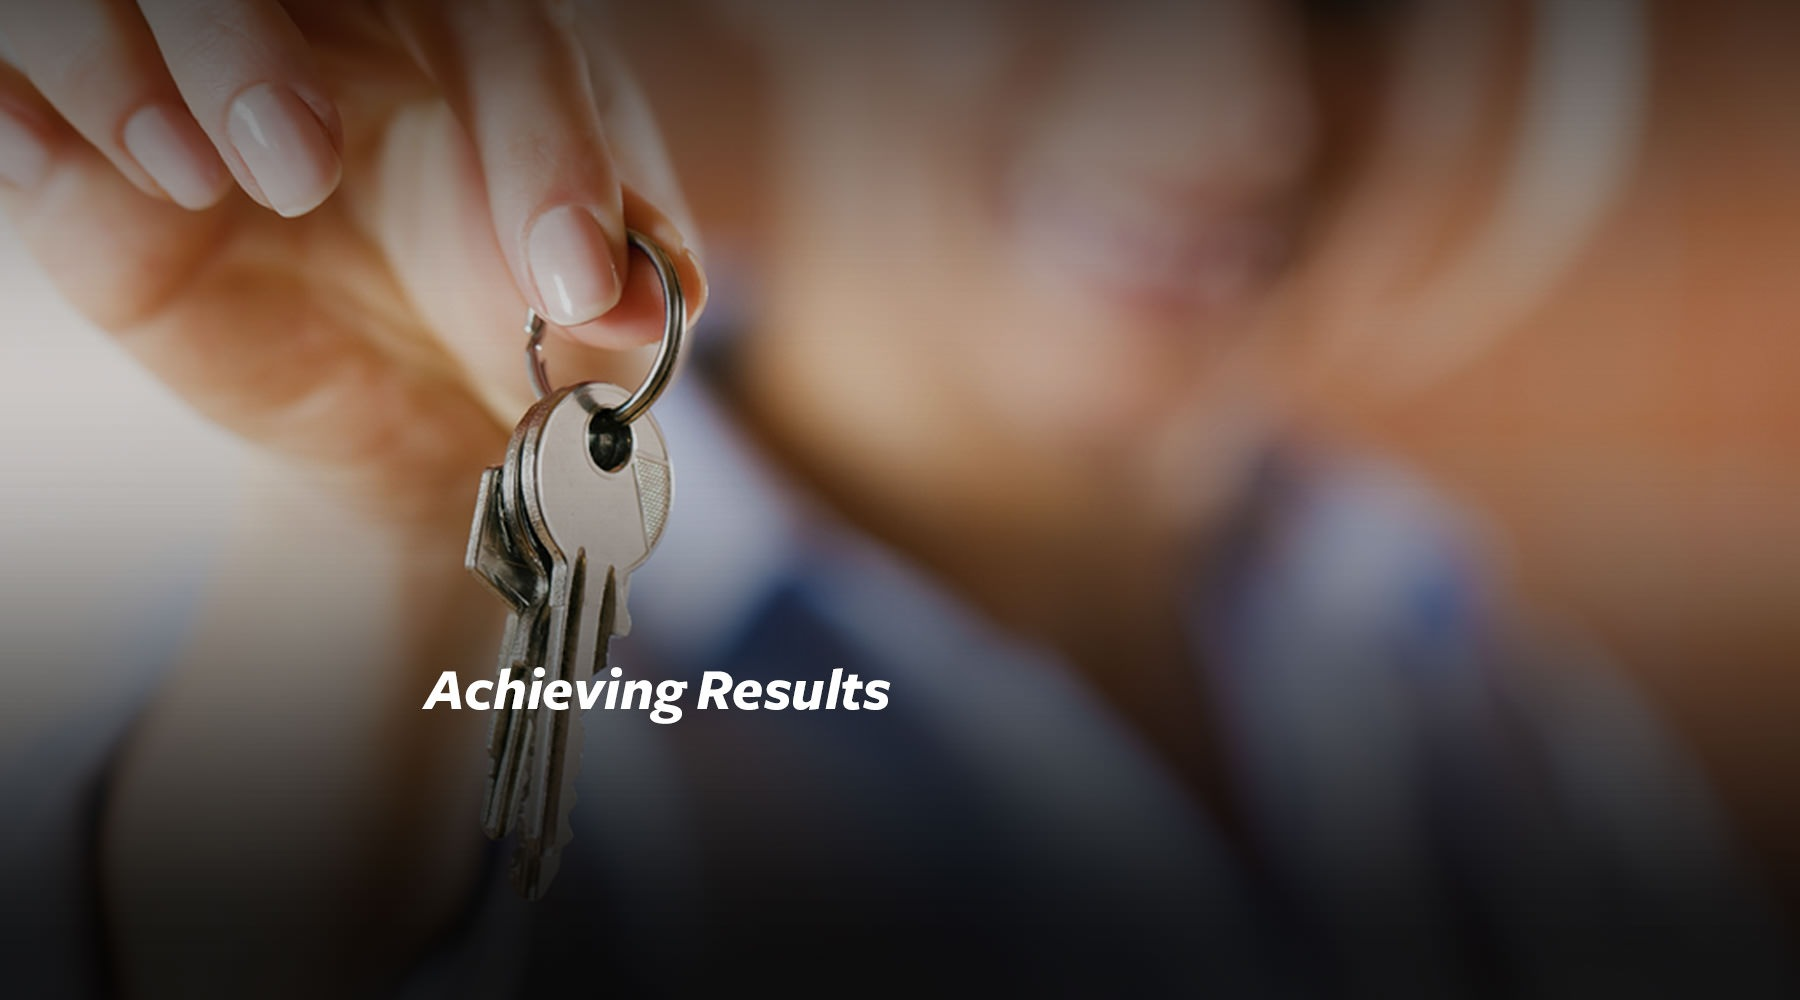 Achieving Results